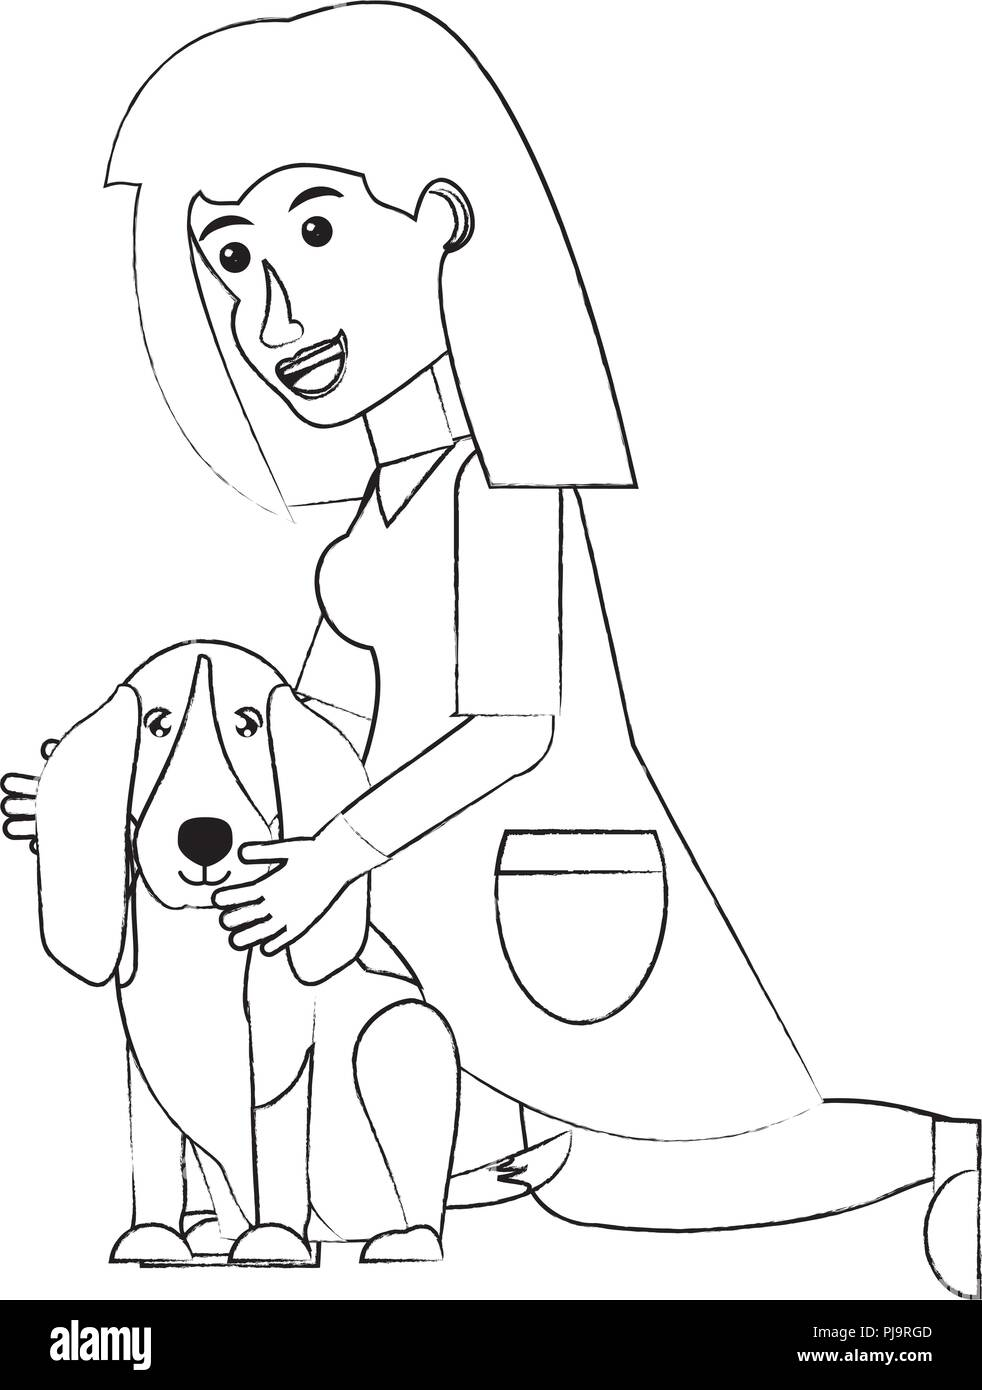 cartoon veterinary woman with cute basset hound dog over white background, vector illustration - Stock Image